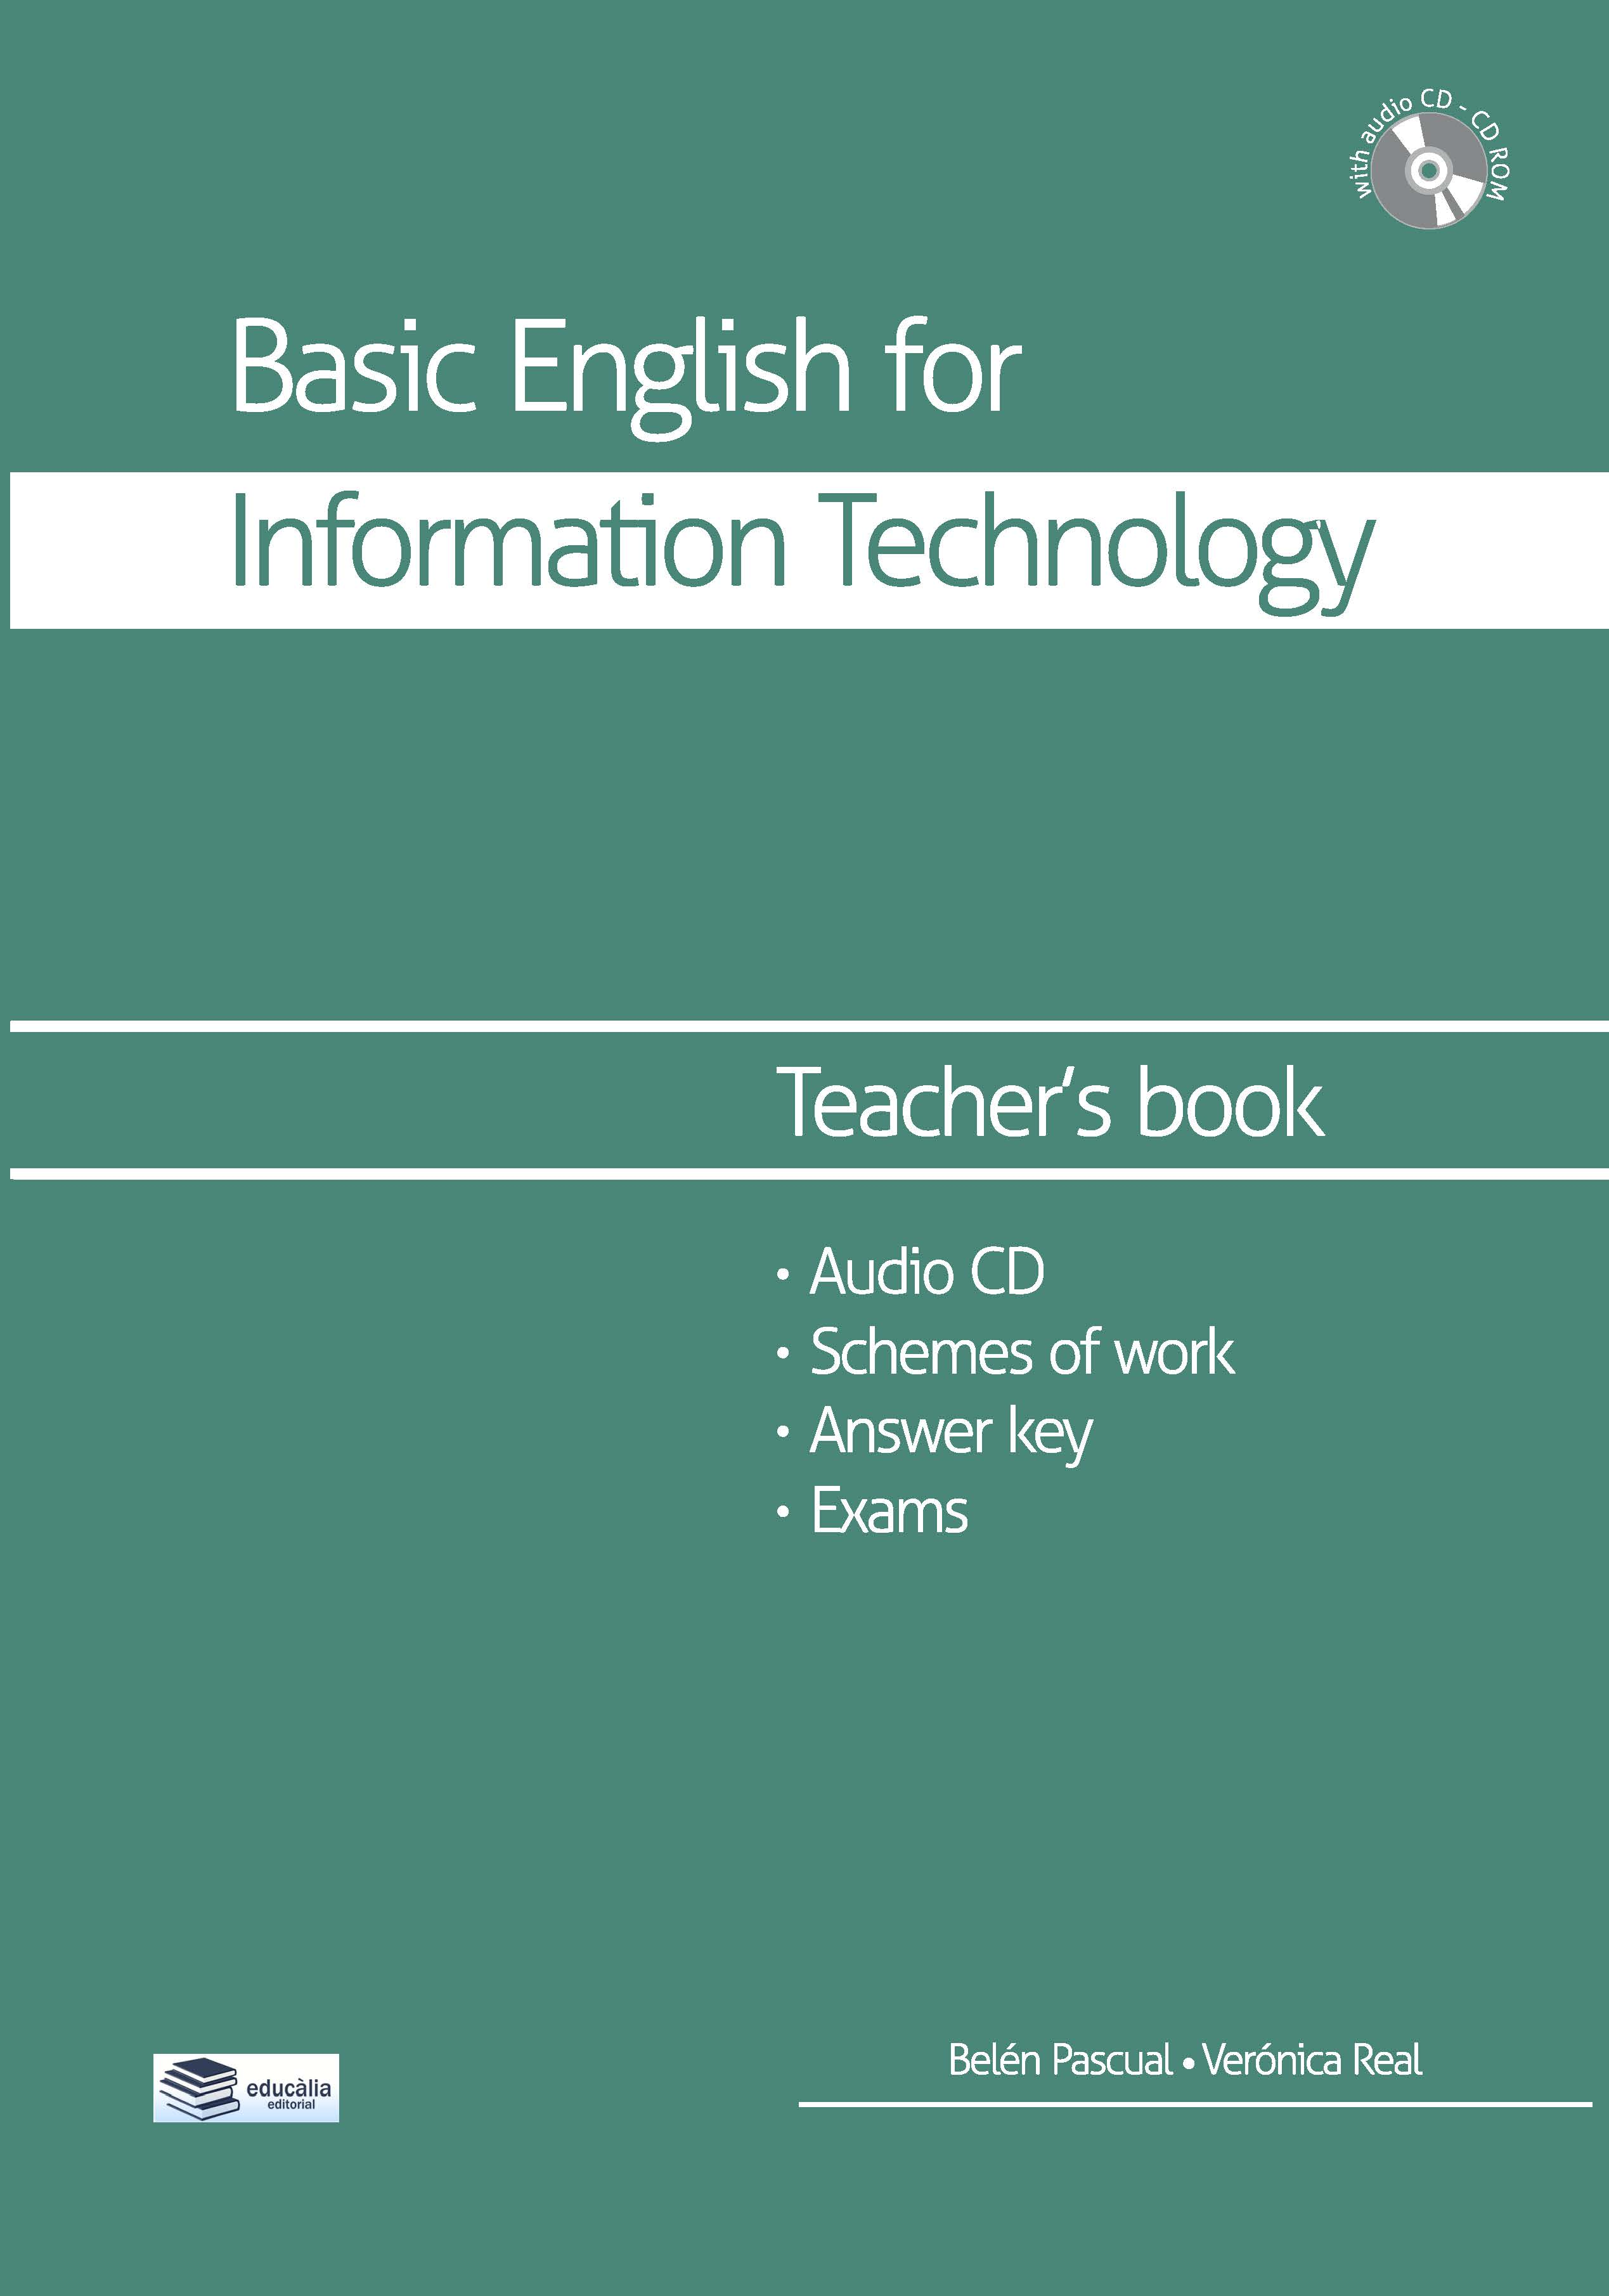 Basic English for Information Technology (Teacher's Resource Book)